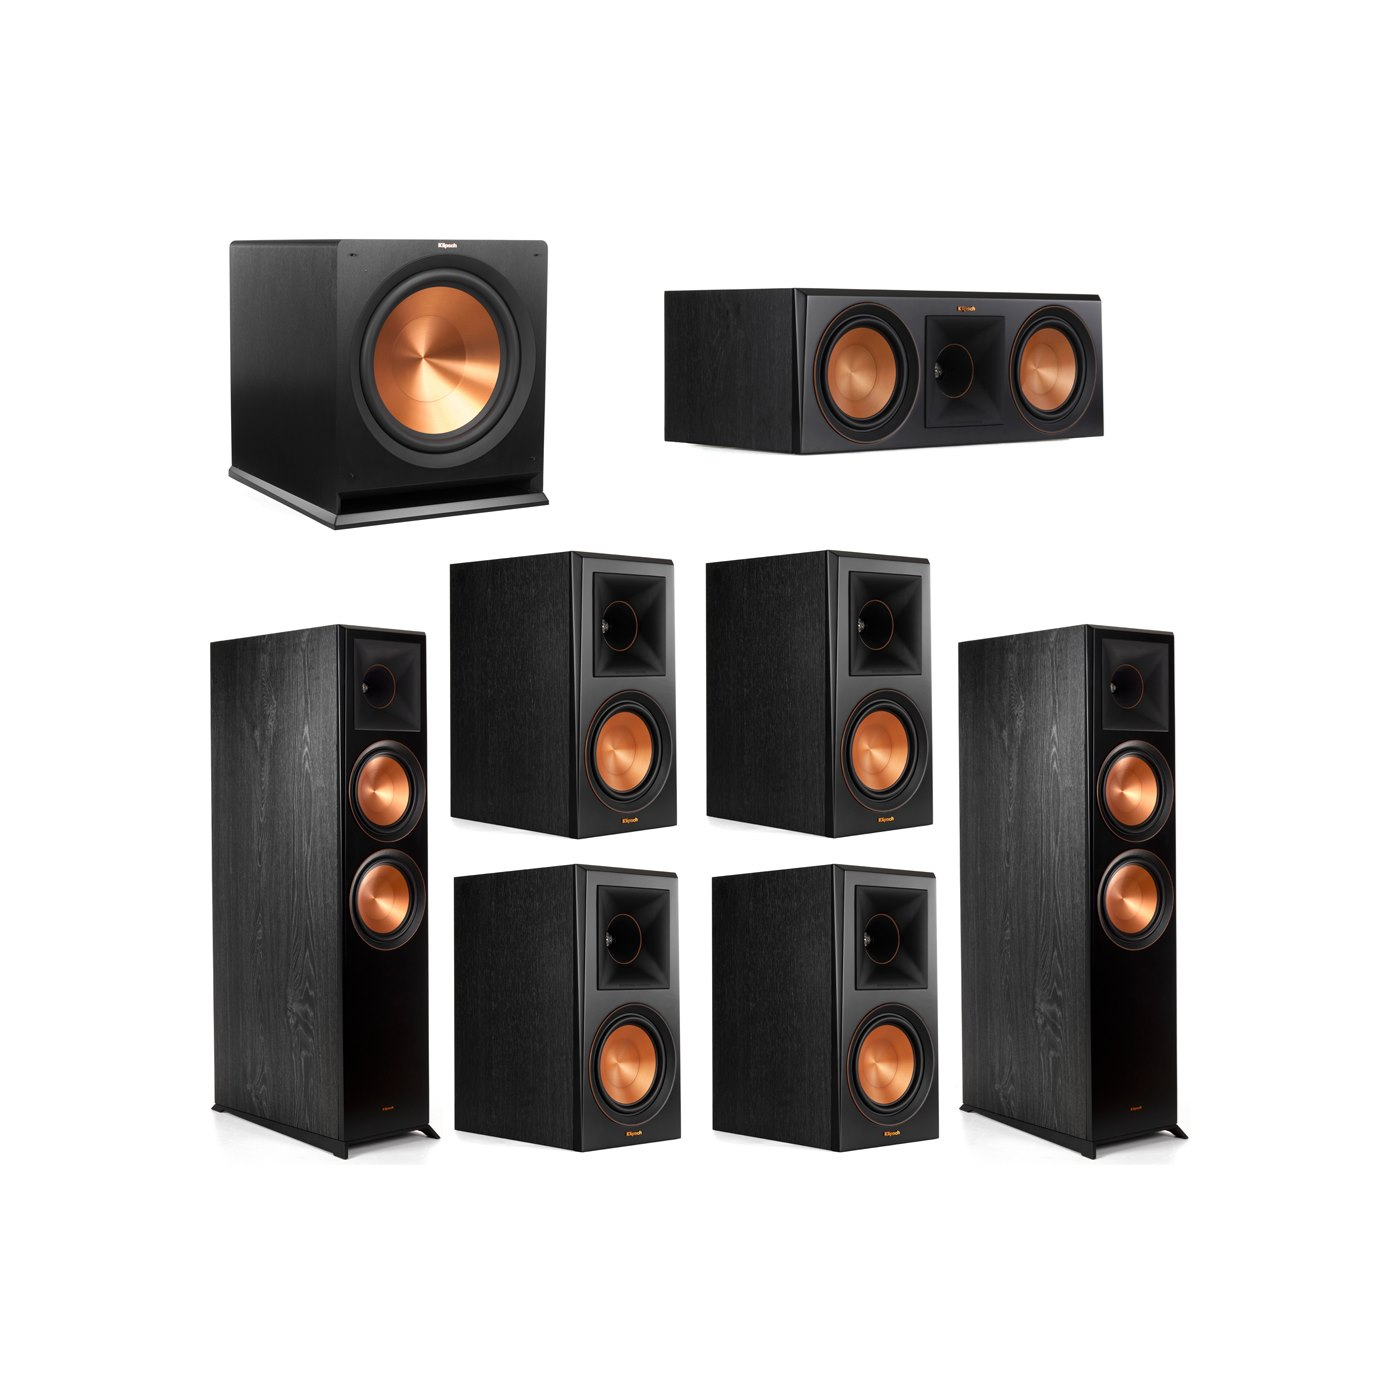 Klipsch 7.1 System with 2 RP-8000F Floorstanding Speakers, 1 Klipsch RP-600C Center Speaker, 4 Klipsch RP-600M Surround Speakers, 1 Klipsch R-115SW Subwoofer